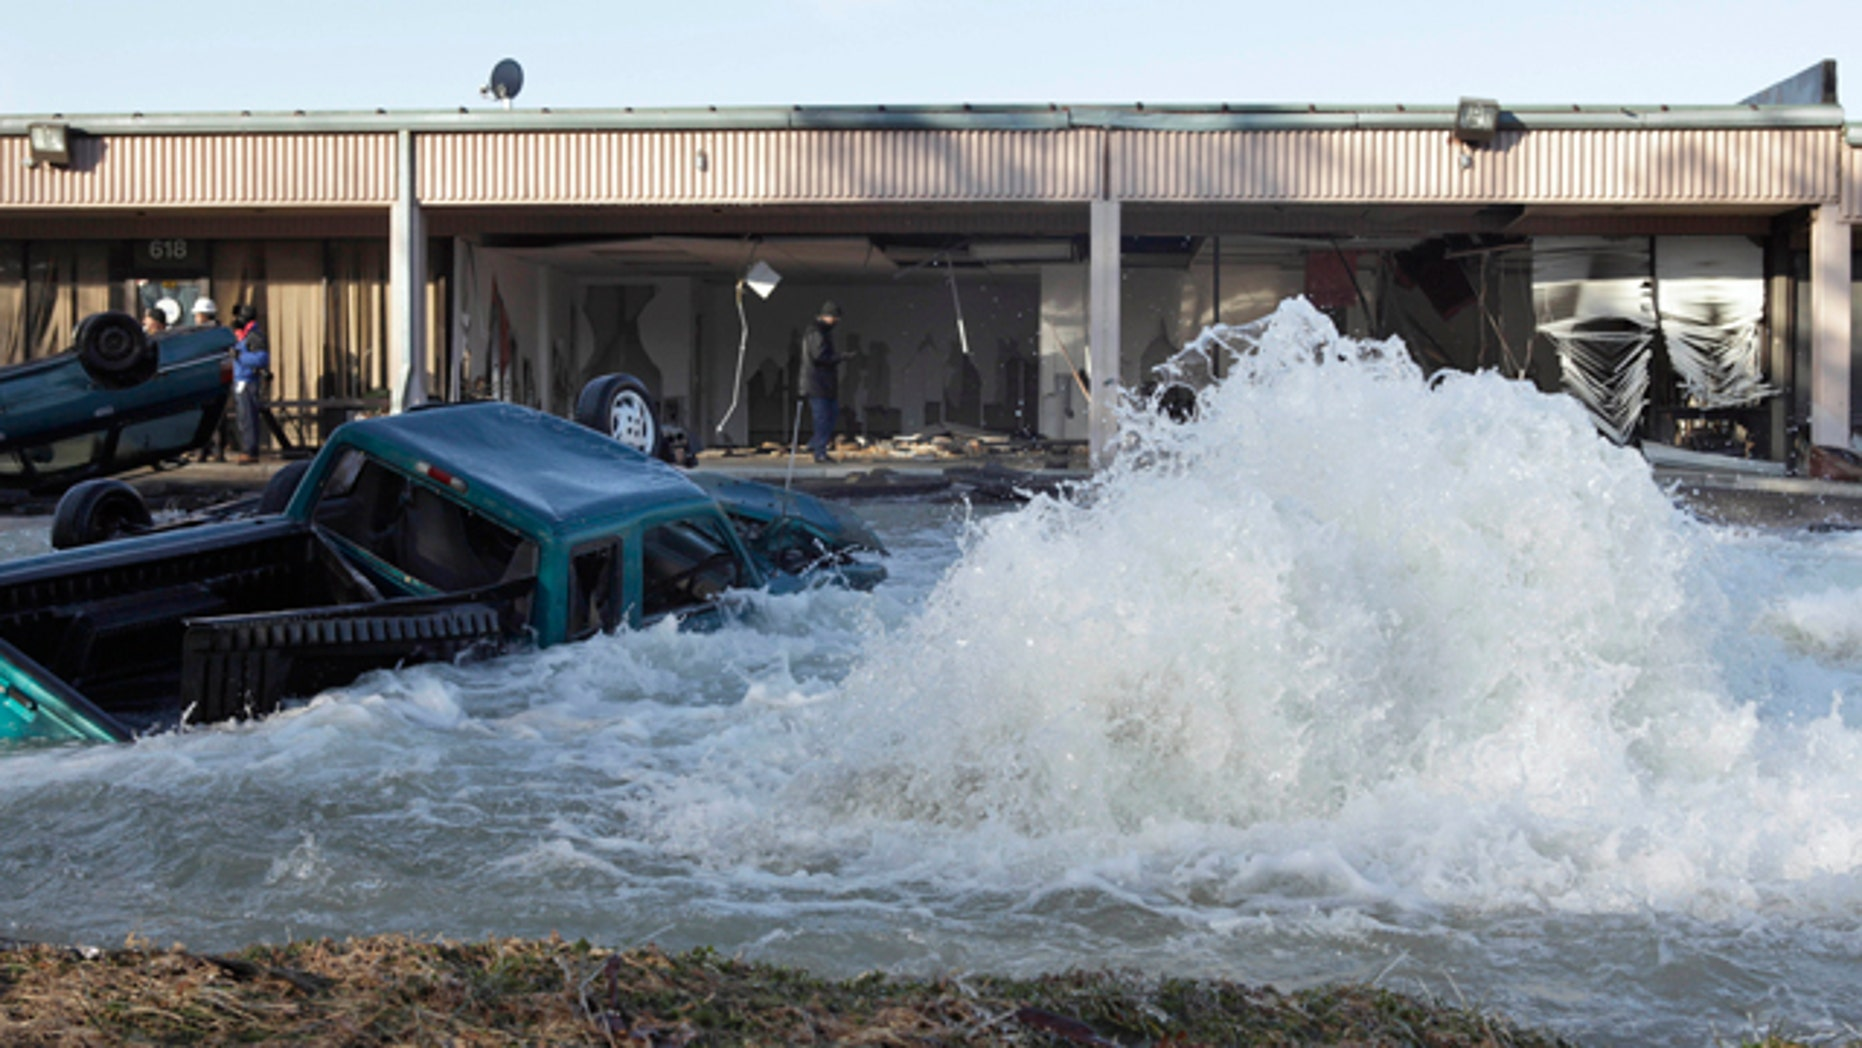 Jan. 24: A water main break is seen at an industrial park next to the Capital Beltway in Capitol Heights, Md. The break outside Washington has sent water pouring from a 54-inch pipe, prompting the closure of the inner loop of the Capital Beltway in Maryland and snarling morning traffic. (AP)